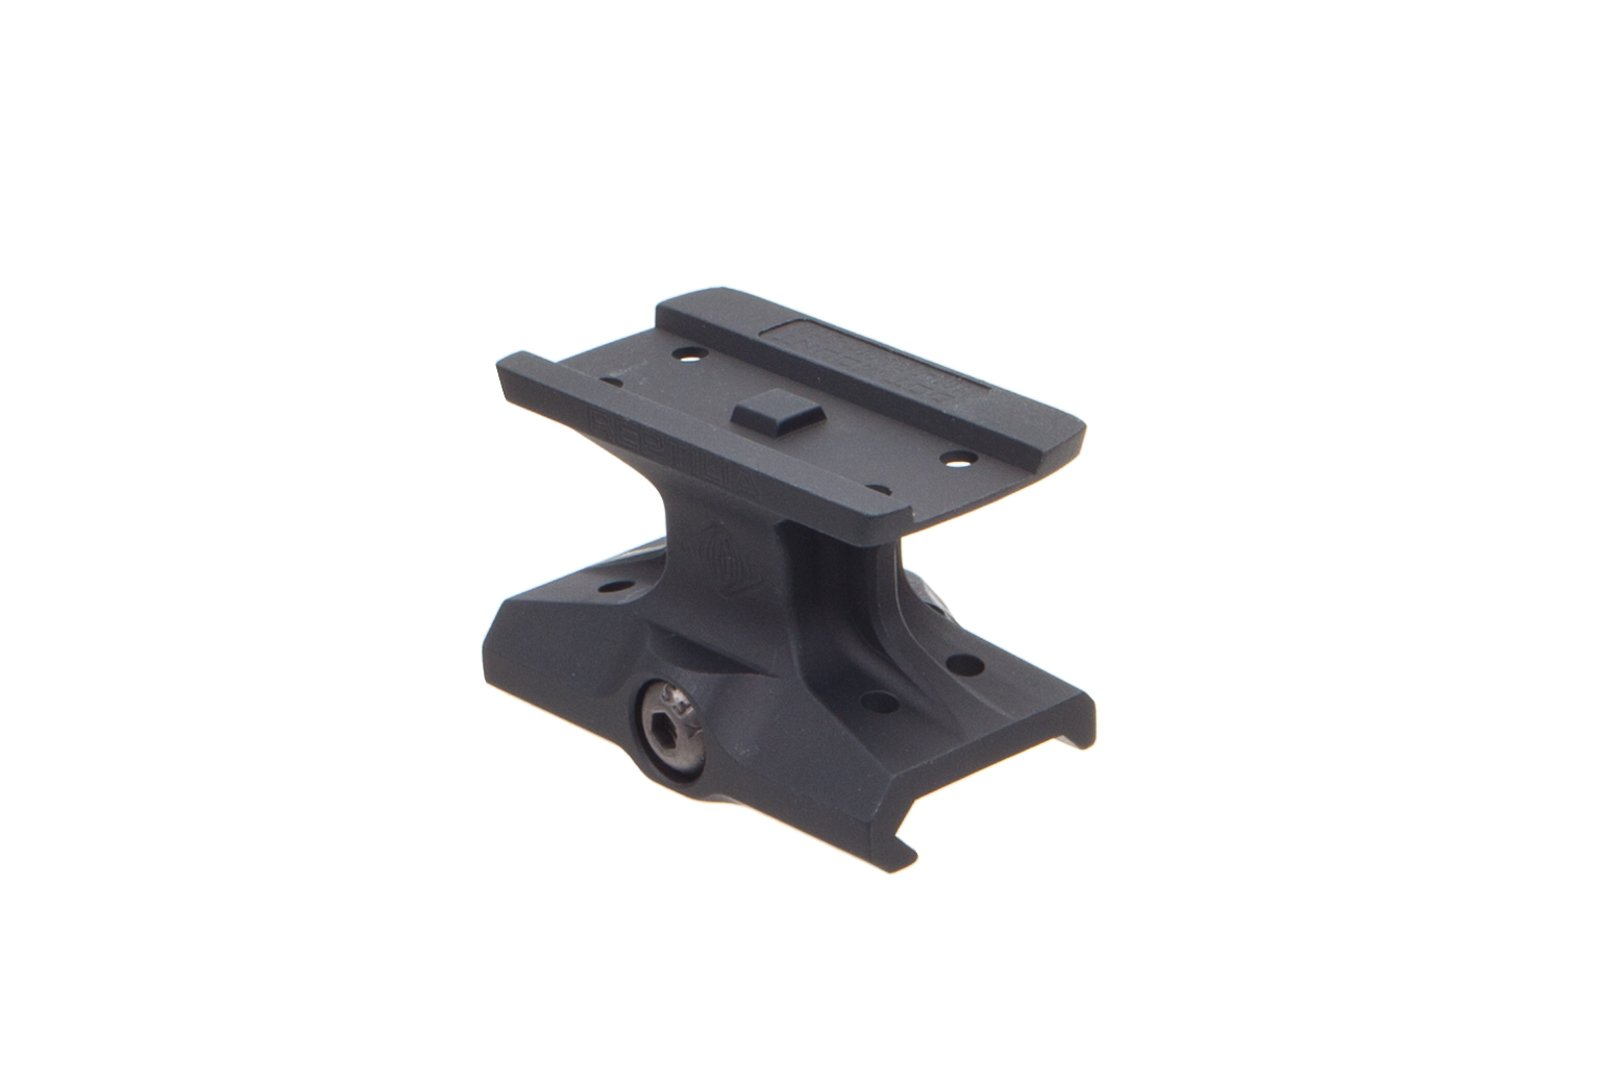 Reptilia Corp DOT Mount Lower 1/3 Co-Witness for Aimpoint T-1/T-2 - Black